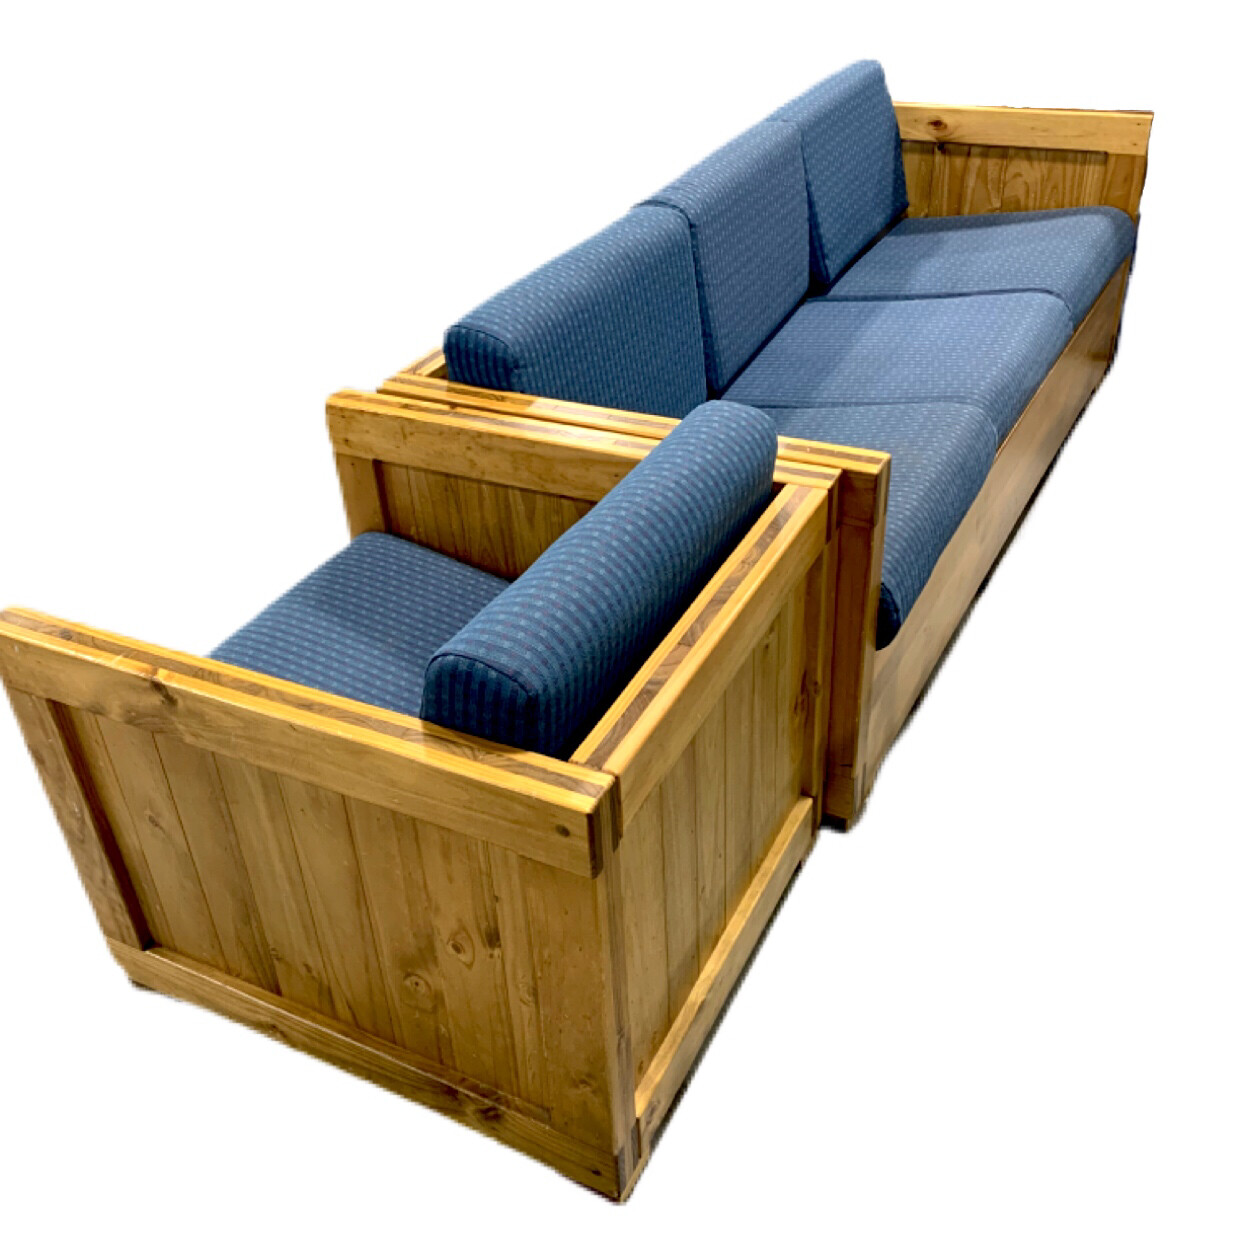 Couch & Armchair Wooden Frame